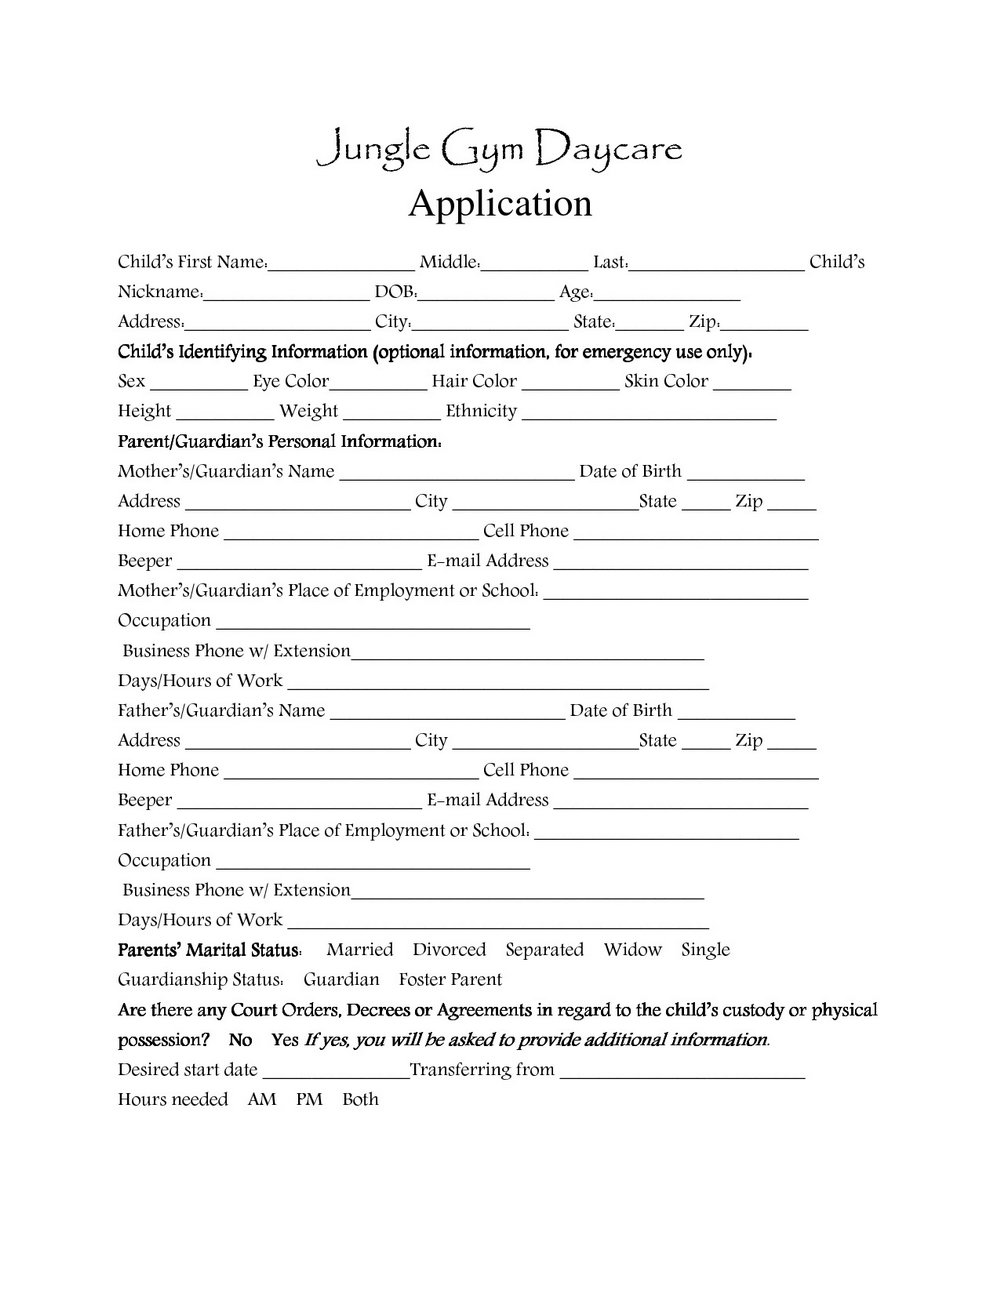 Daycare Application Form Sample